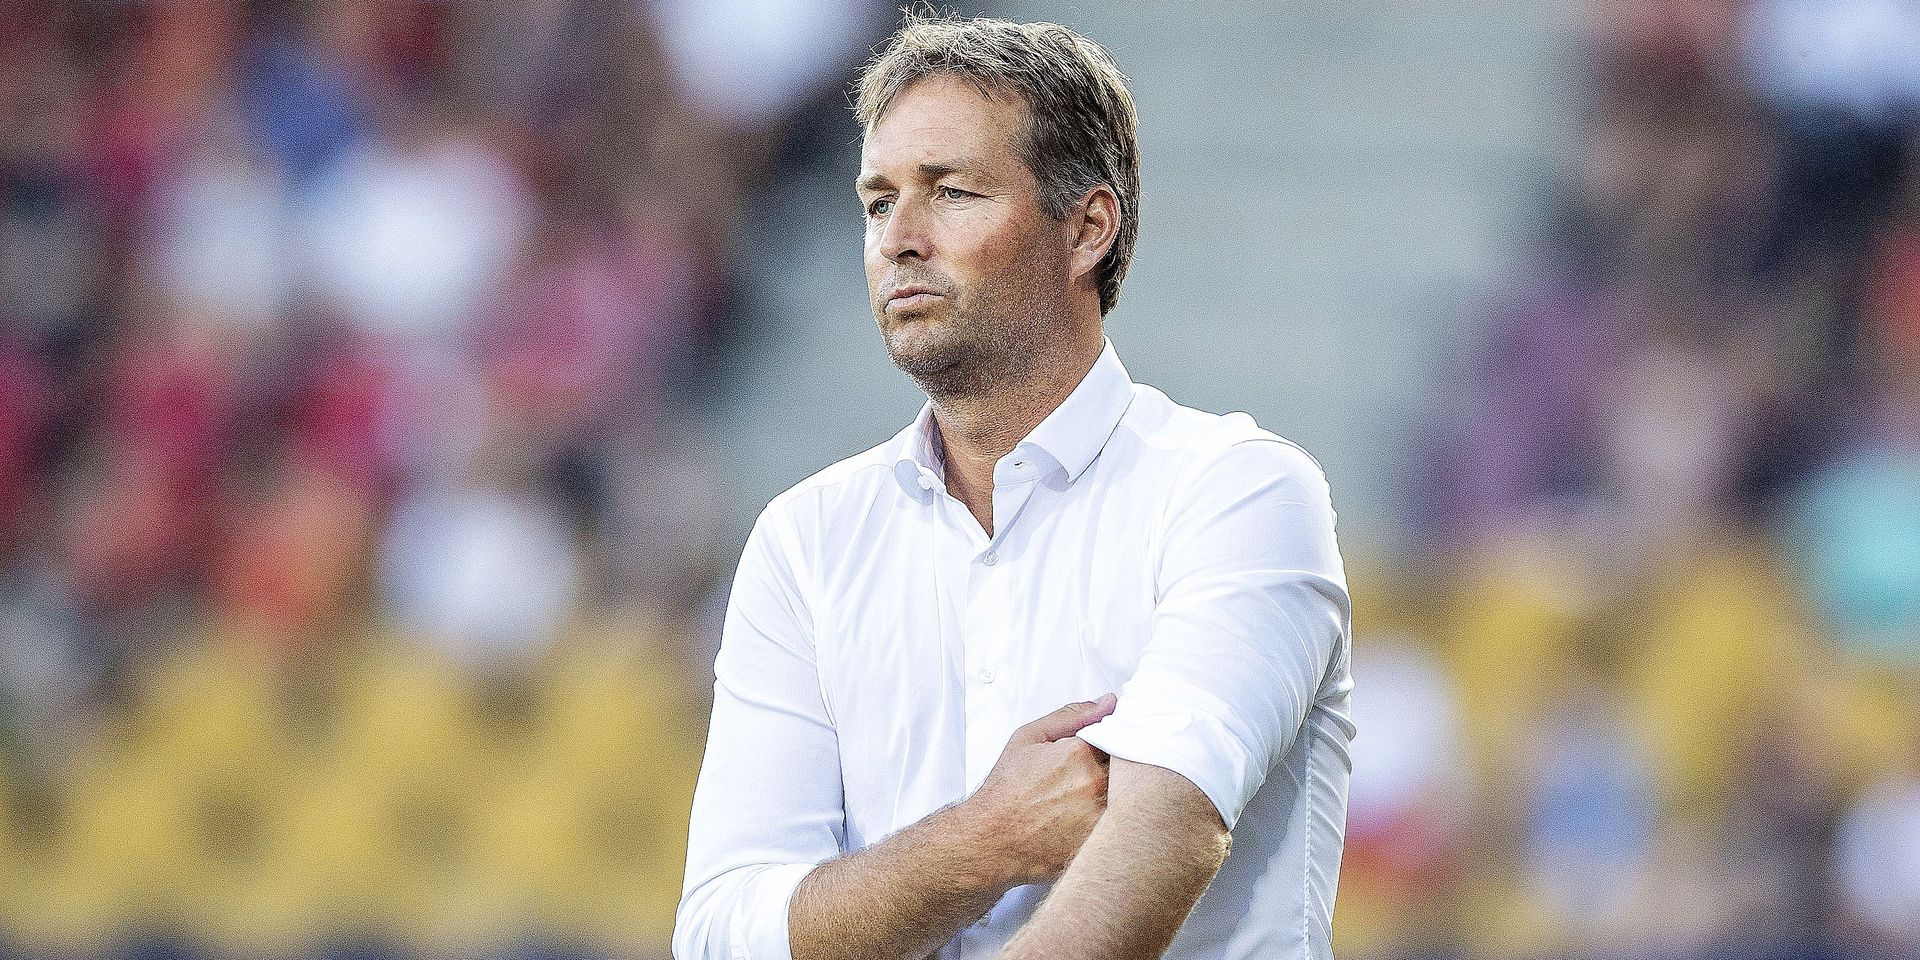 Kasper Hjulmand, coach for FC Nordsjaelland, looks on during the first leg of the second qualifying round for the Europa League match between FC Nordsjaelland and AIK Stockholm at Right to Dream Park in Farum on July 26, 2018. (Photo by Anders Kjaerbye / Ritzau Scanpix / AFP) / Denmark OUT